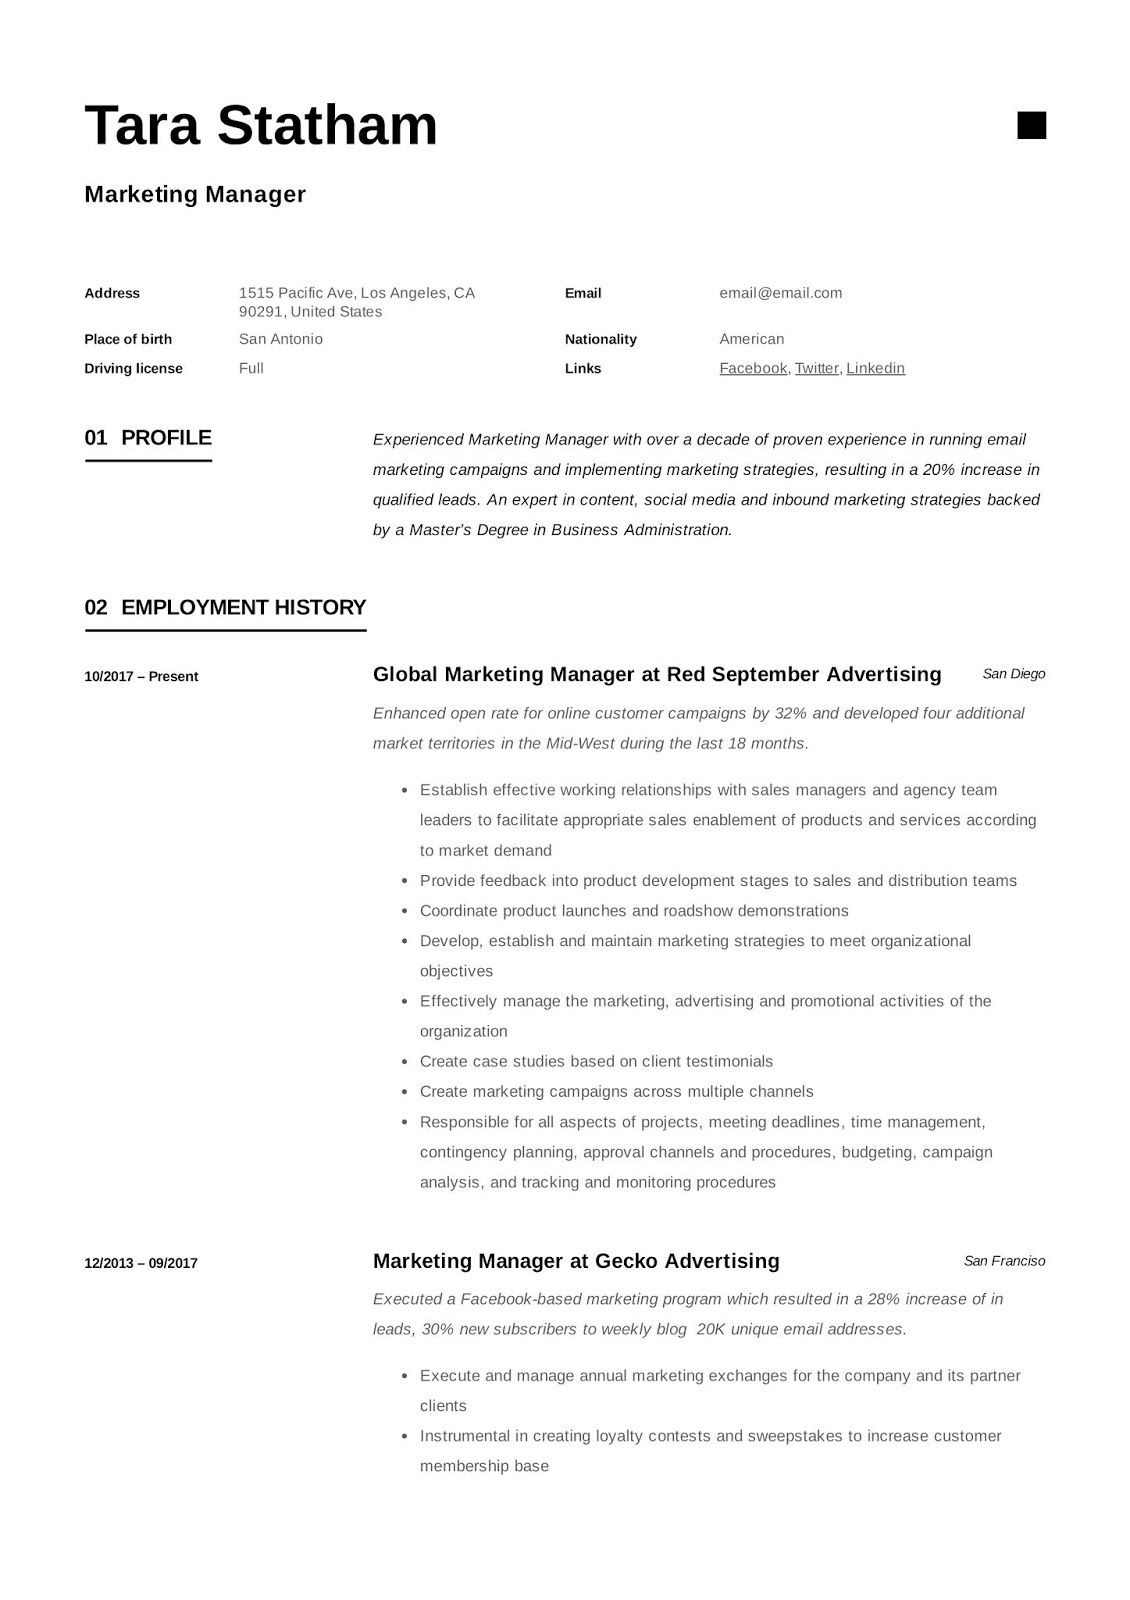 marketing manager cv example, marketing manager cv example